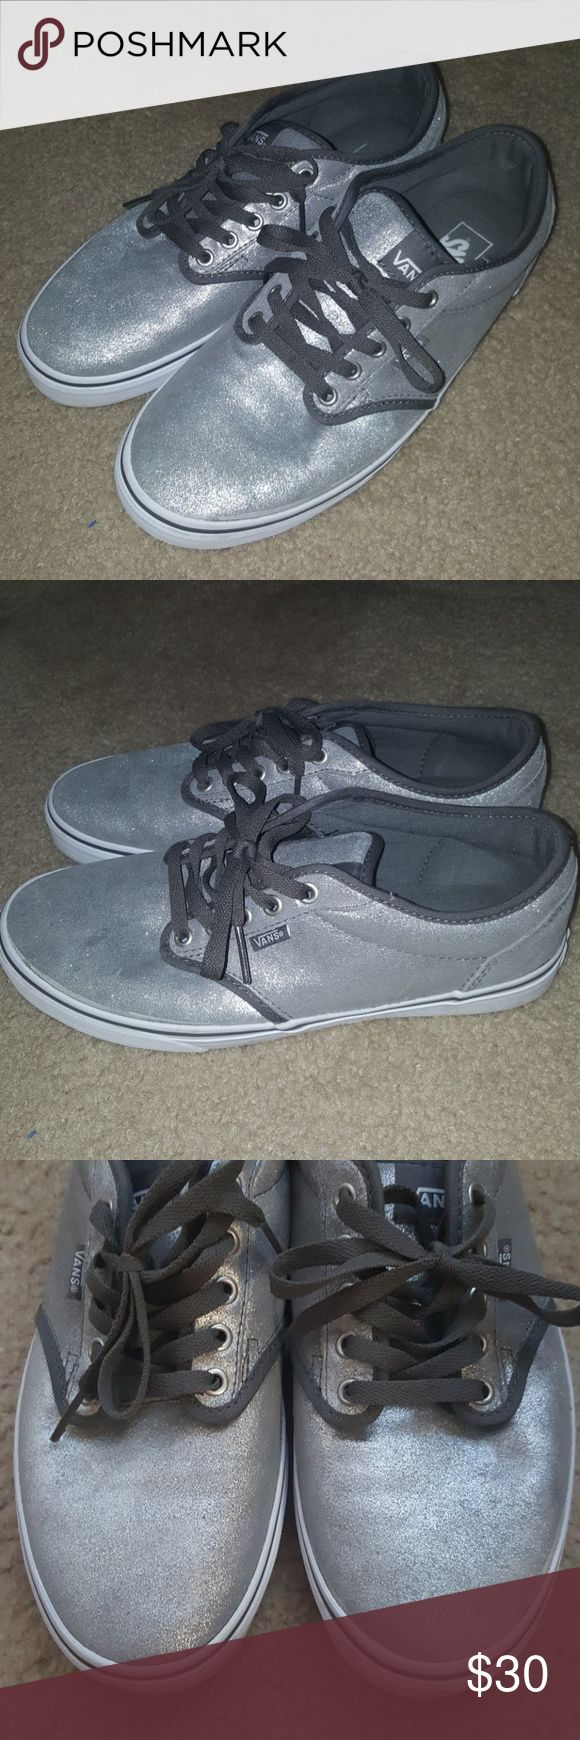 Women's Silver Glitter Vans Sneakers size 11 EUC Excellent used condition. Only worn twice. Silver glitter vans with gray laces. Women's size 11. Smoke and pet free home! No box. Will ship within 2 business days. Vans Shoes Sneakers